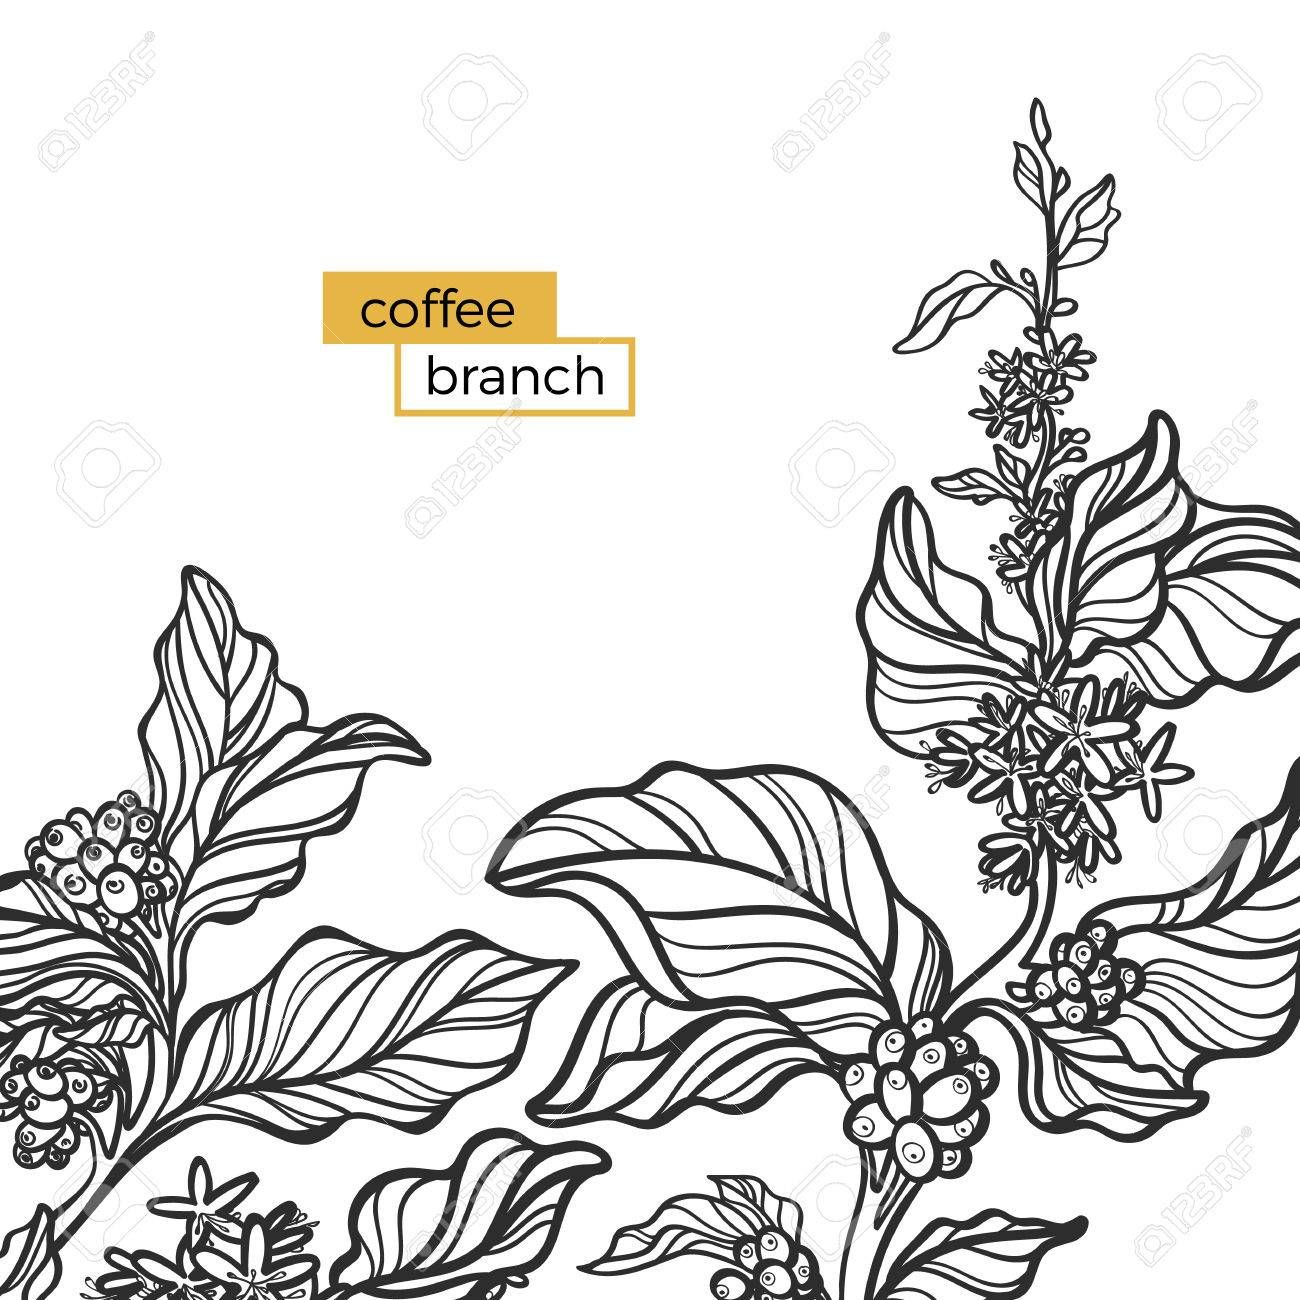 Template Of Black Branch Of Coffee Tree With Leaves And Natural Coffee Beans Organic Product Silhouette Shape Botanical Illustration Vector Illust Krijtbord